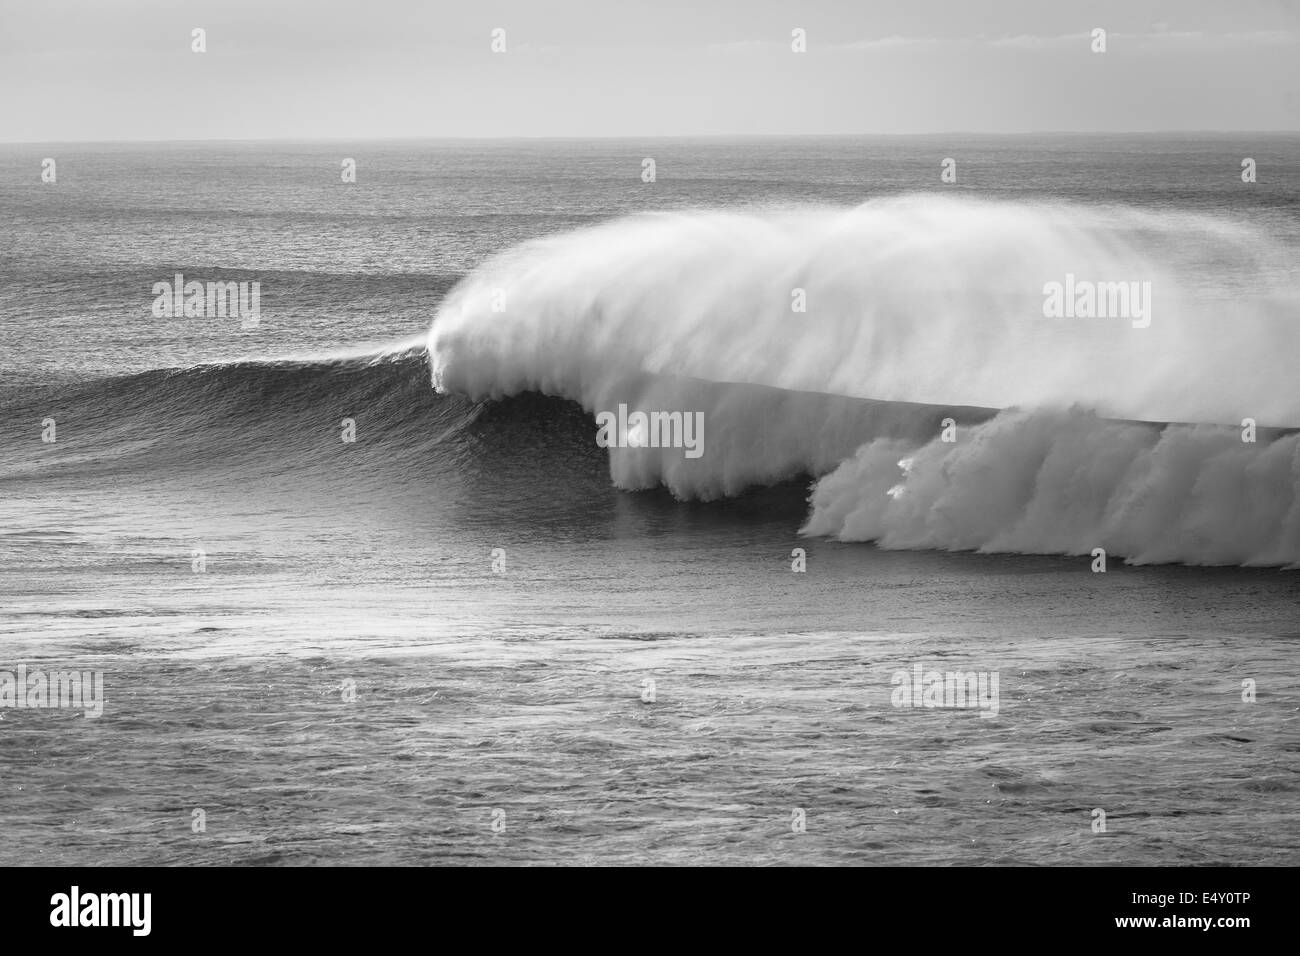 Large ocean wave crashing breaking with offshore wind spray in black white contrasts - Stock Image